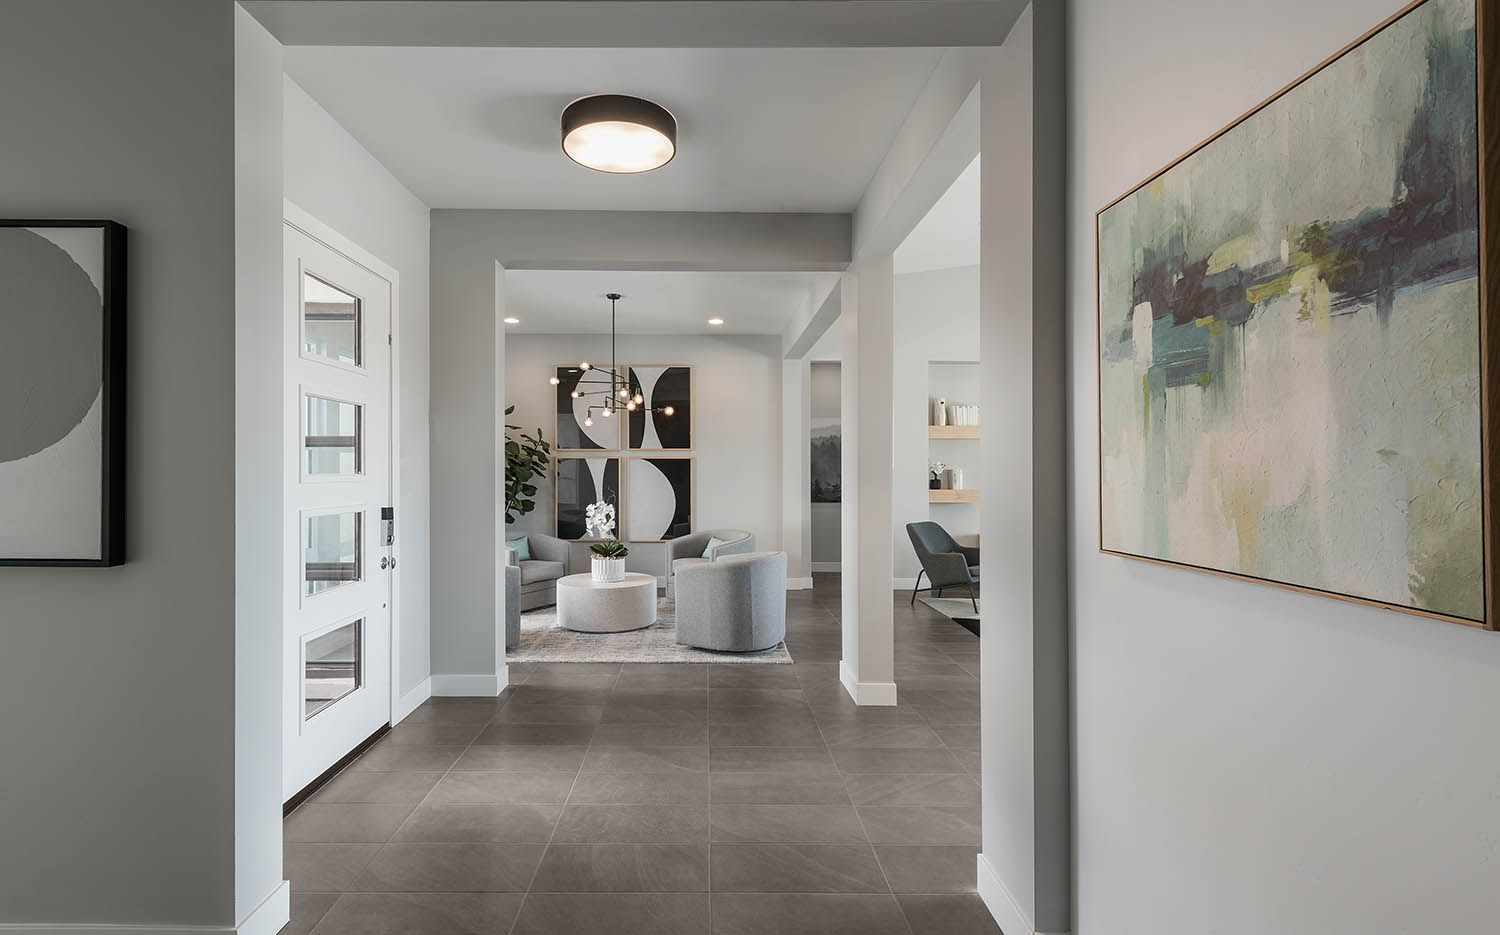 Living Area featured in the Piedmont Plan 3 By Maracay Homes in Phoenix-Mesa, AZ